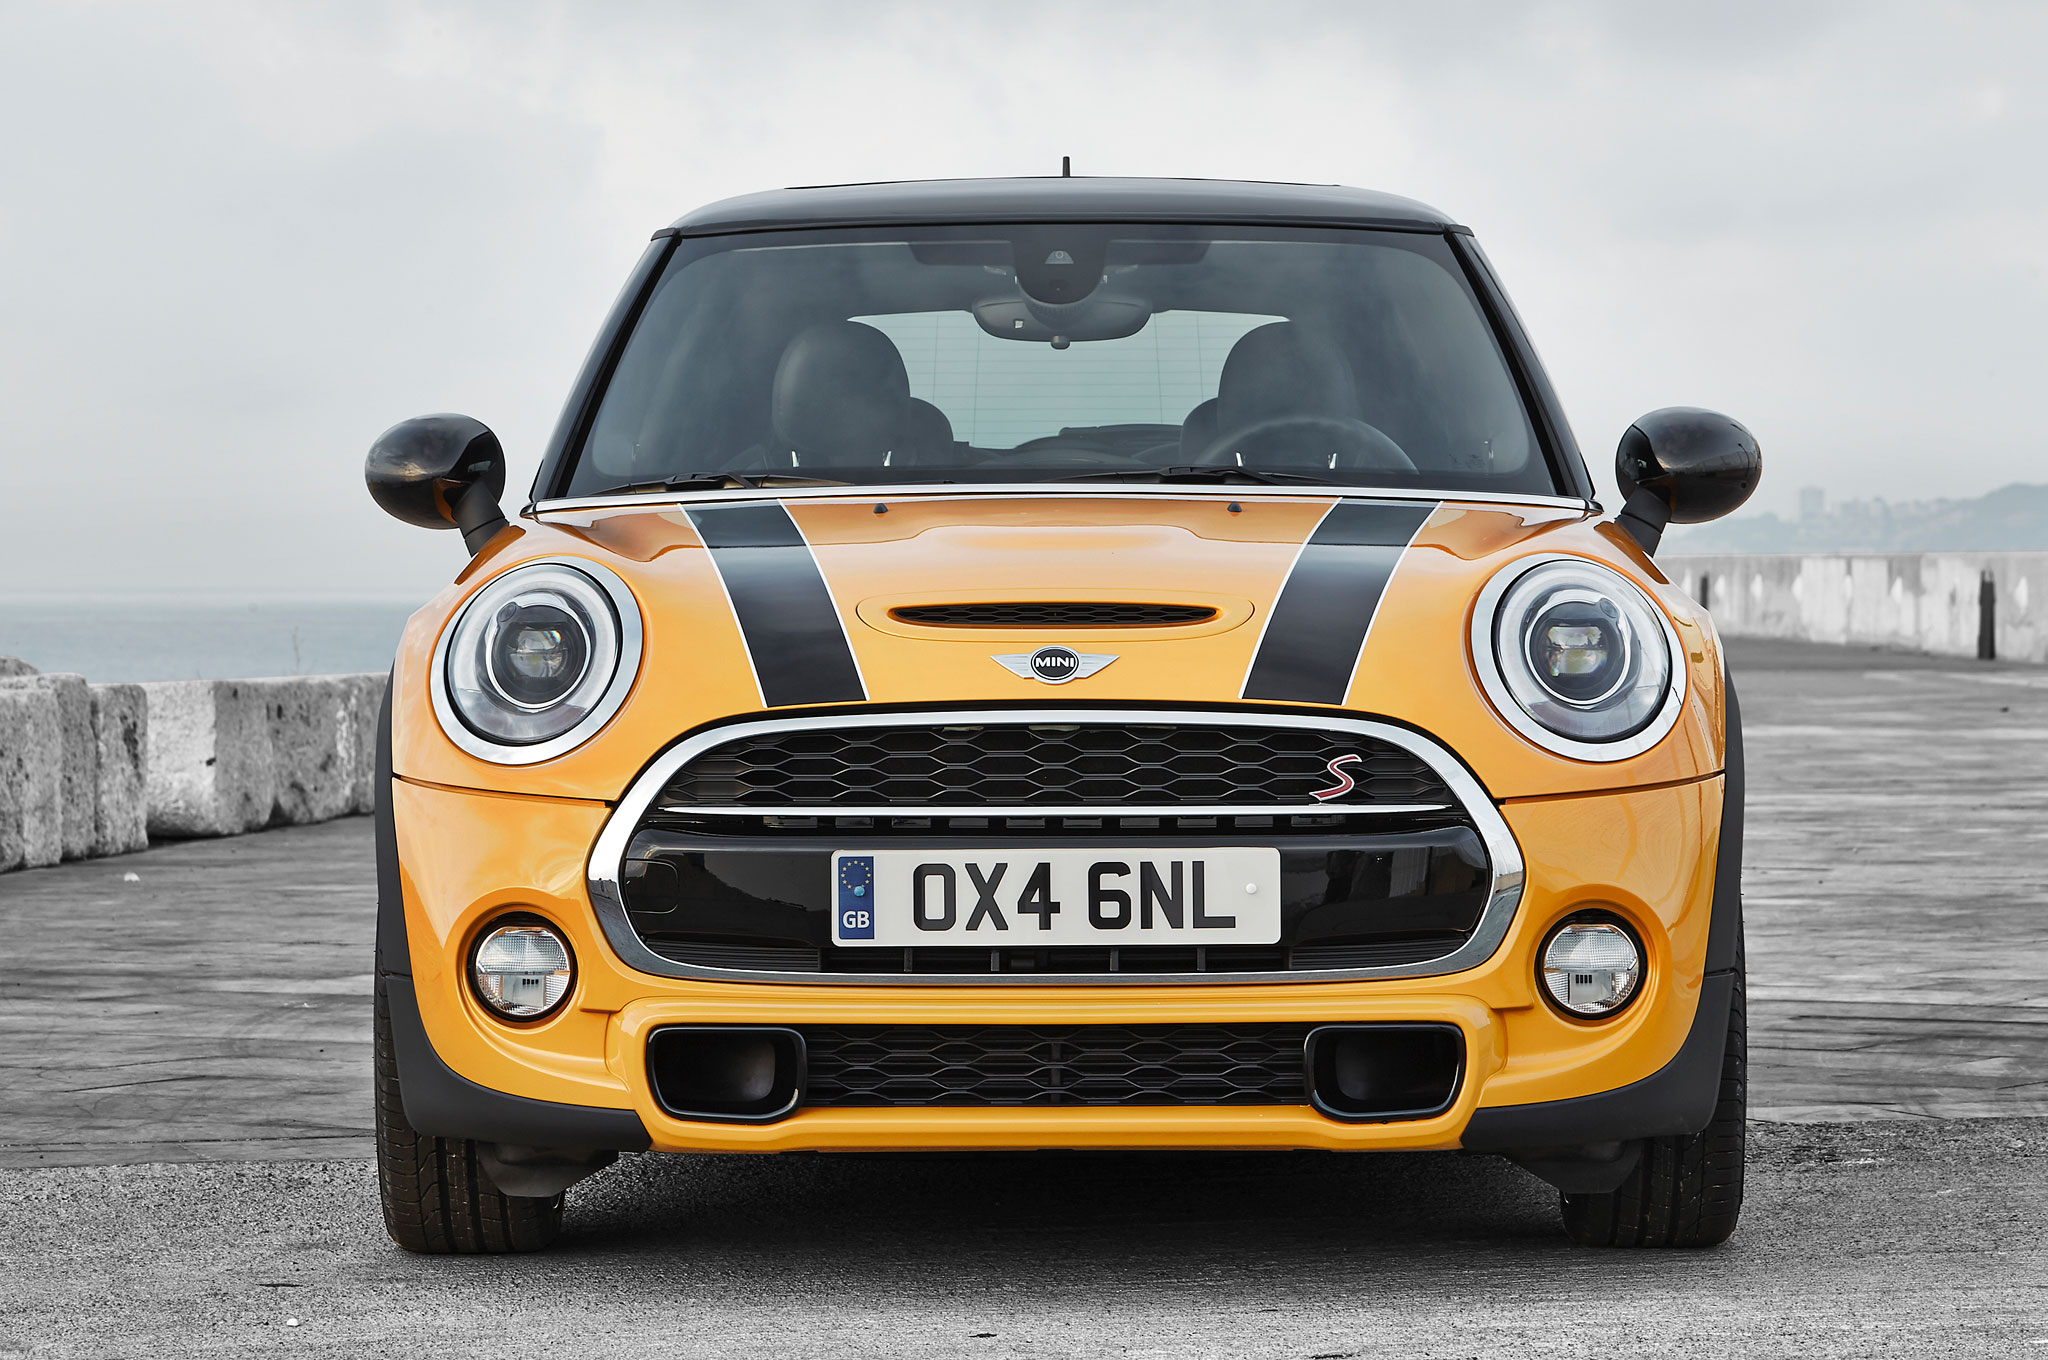 2015 Mini Cooper S front profile report 2015 mini cooper jcw to get 231 hp from new engine